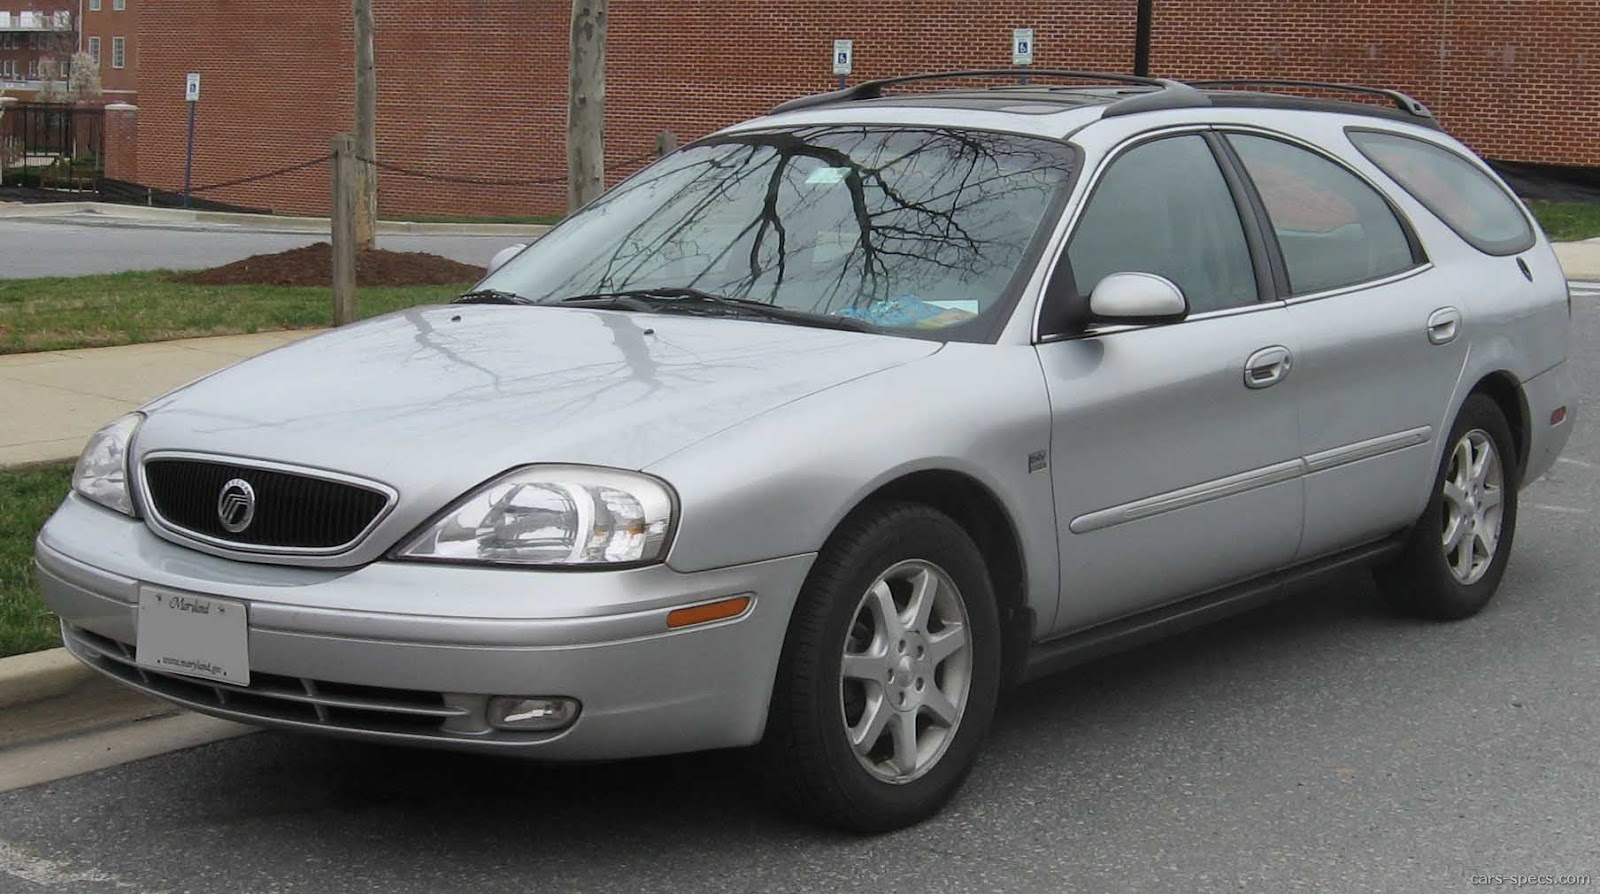 2001 Mercury Sable Wagon Specifications Pictures Prices